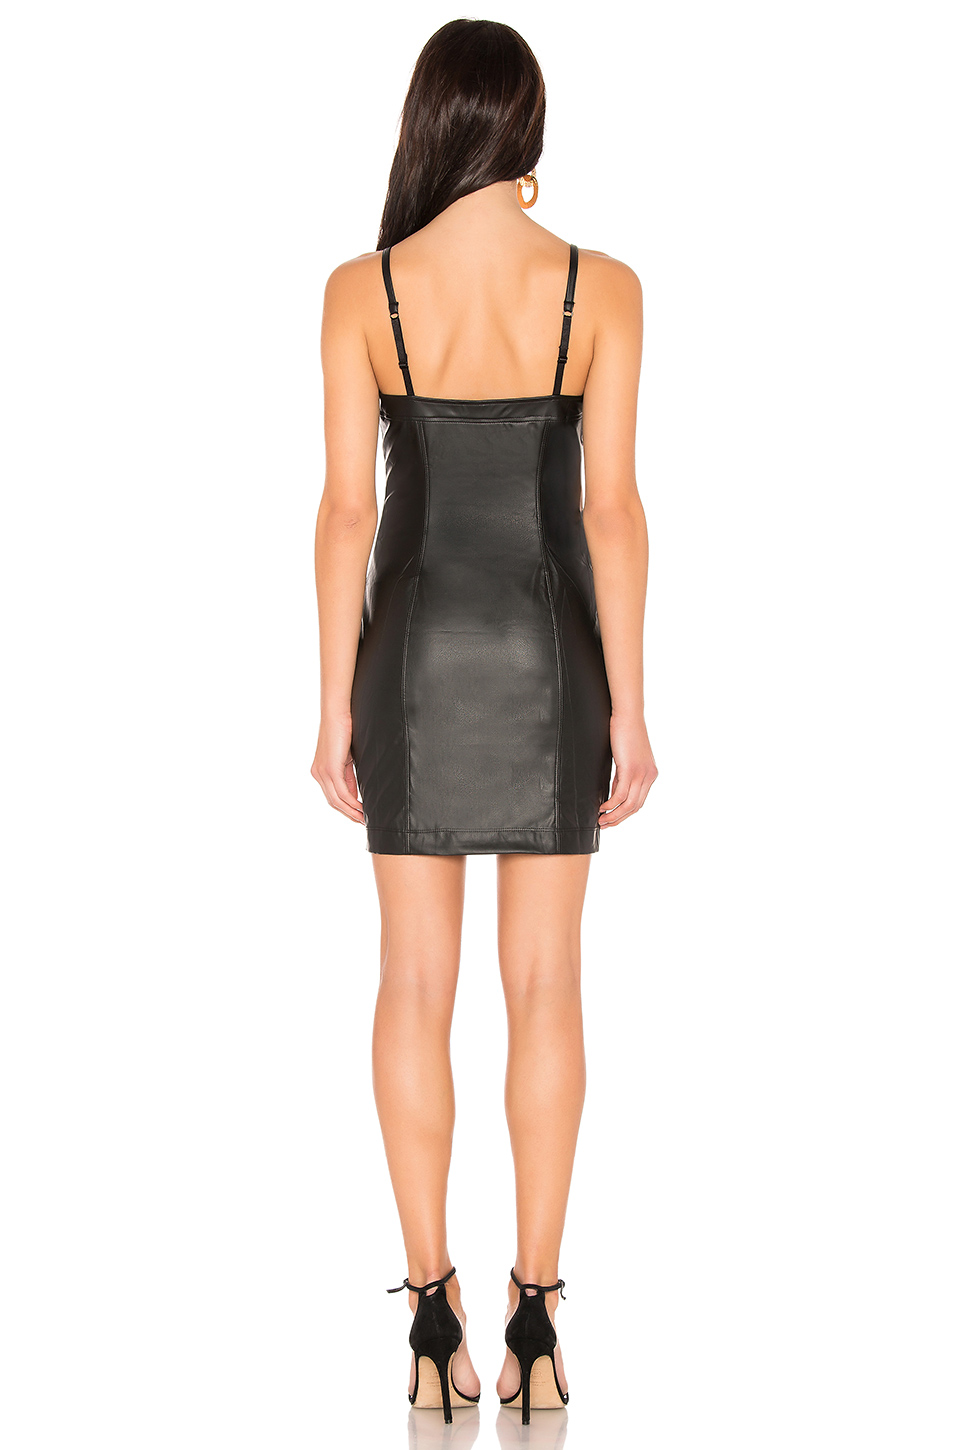 Free People Say No More Bodycon Dress